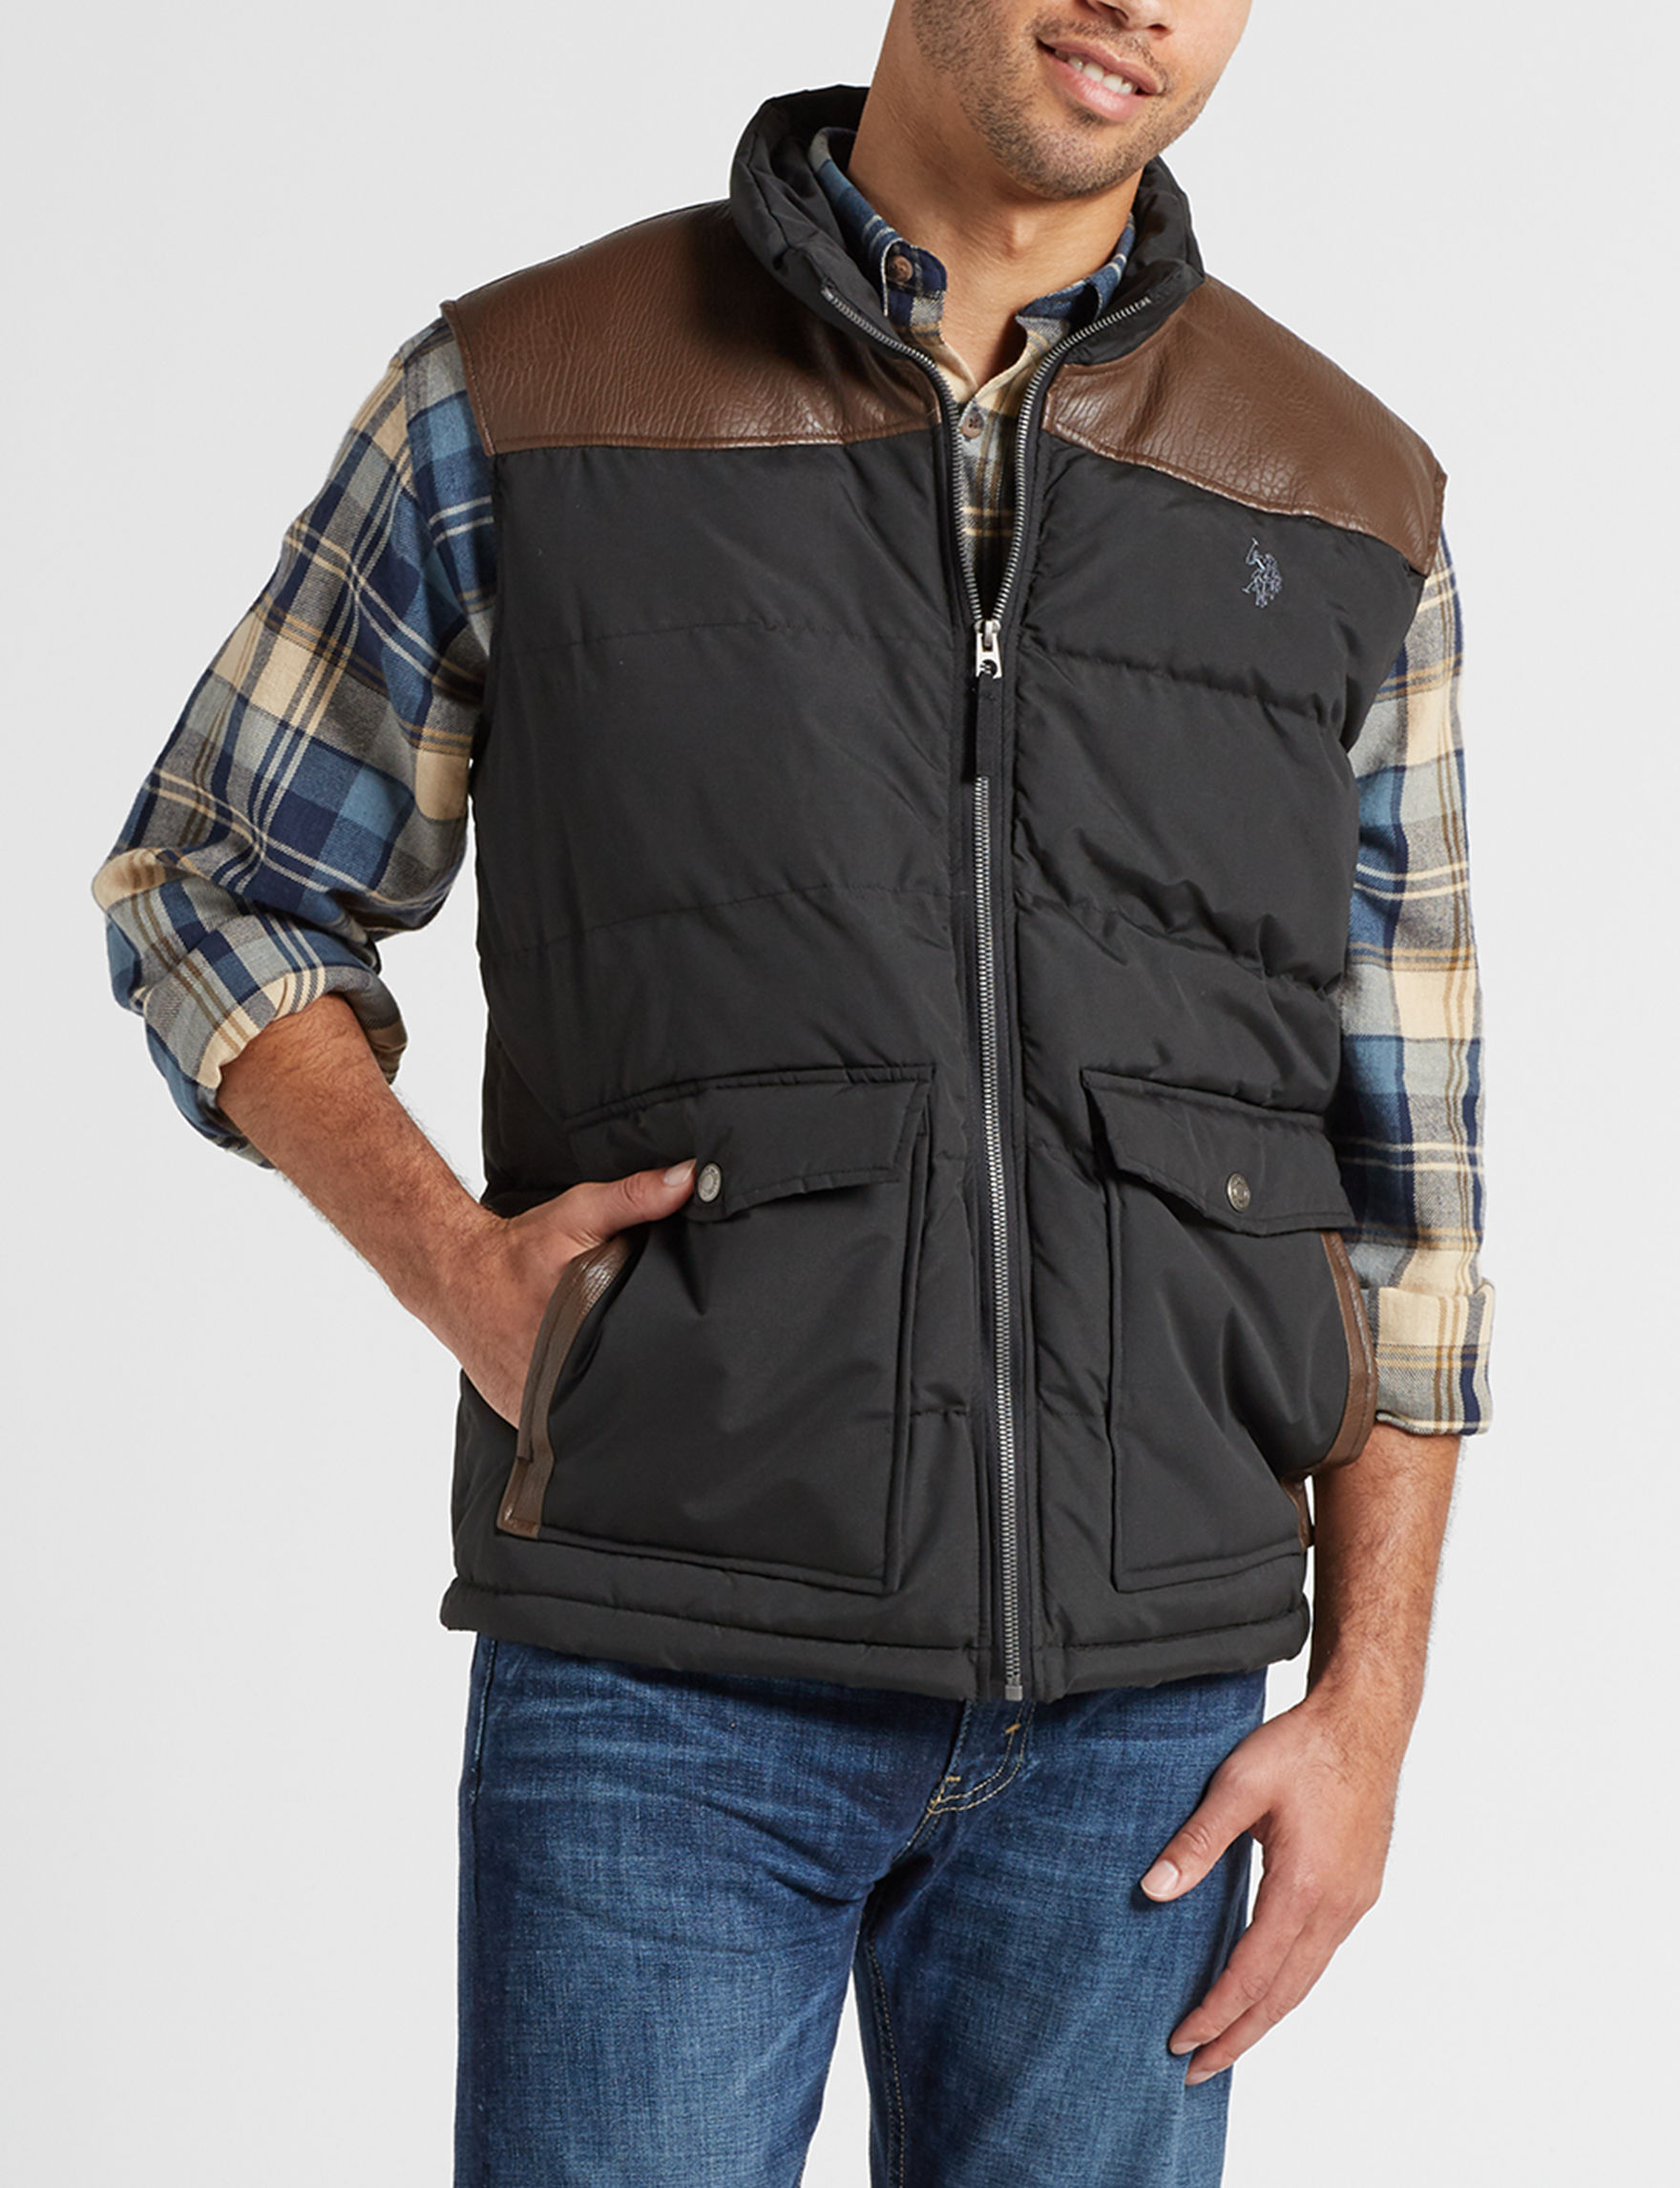 U.S. Polo Assn. Black Puffer & Quilted Jackets Vests